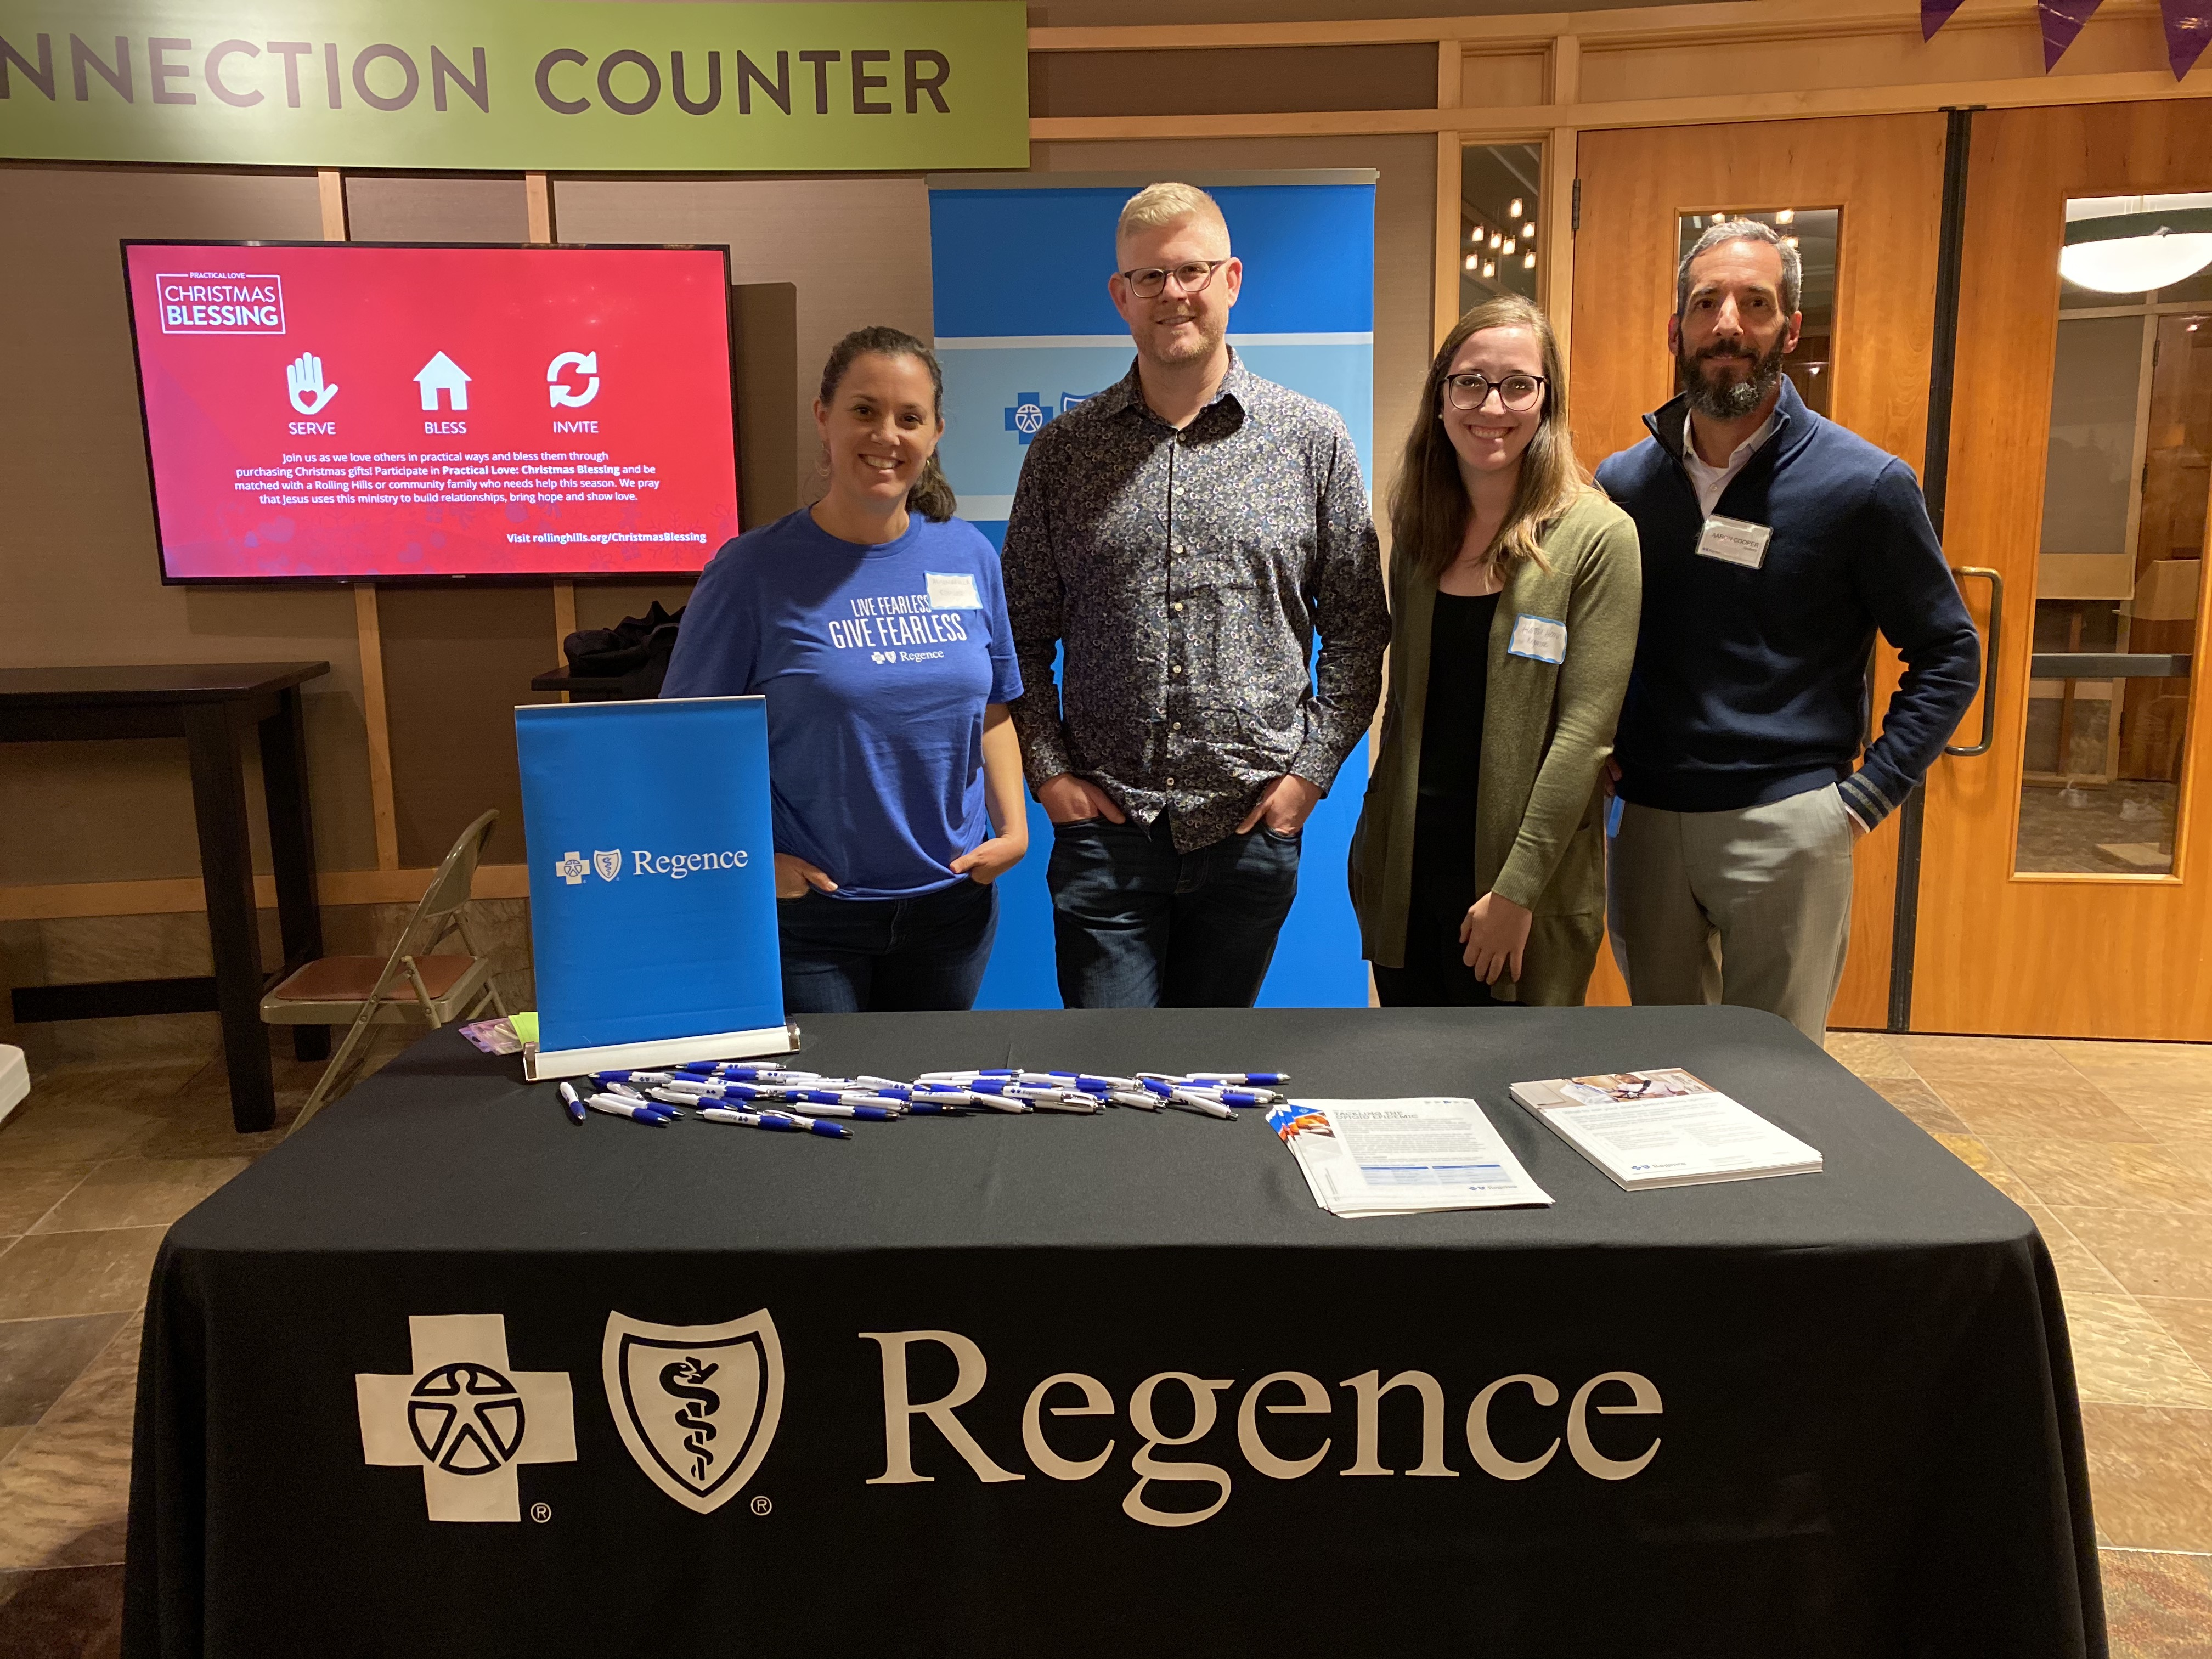 Local organizations including Regence participated in Continuum of Care resource fair